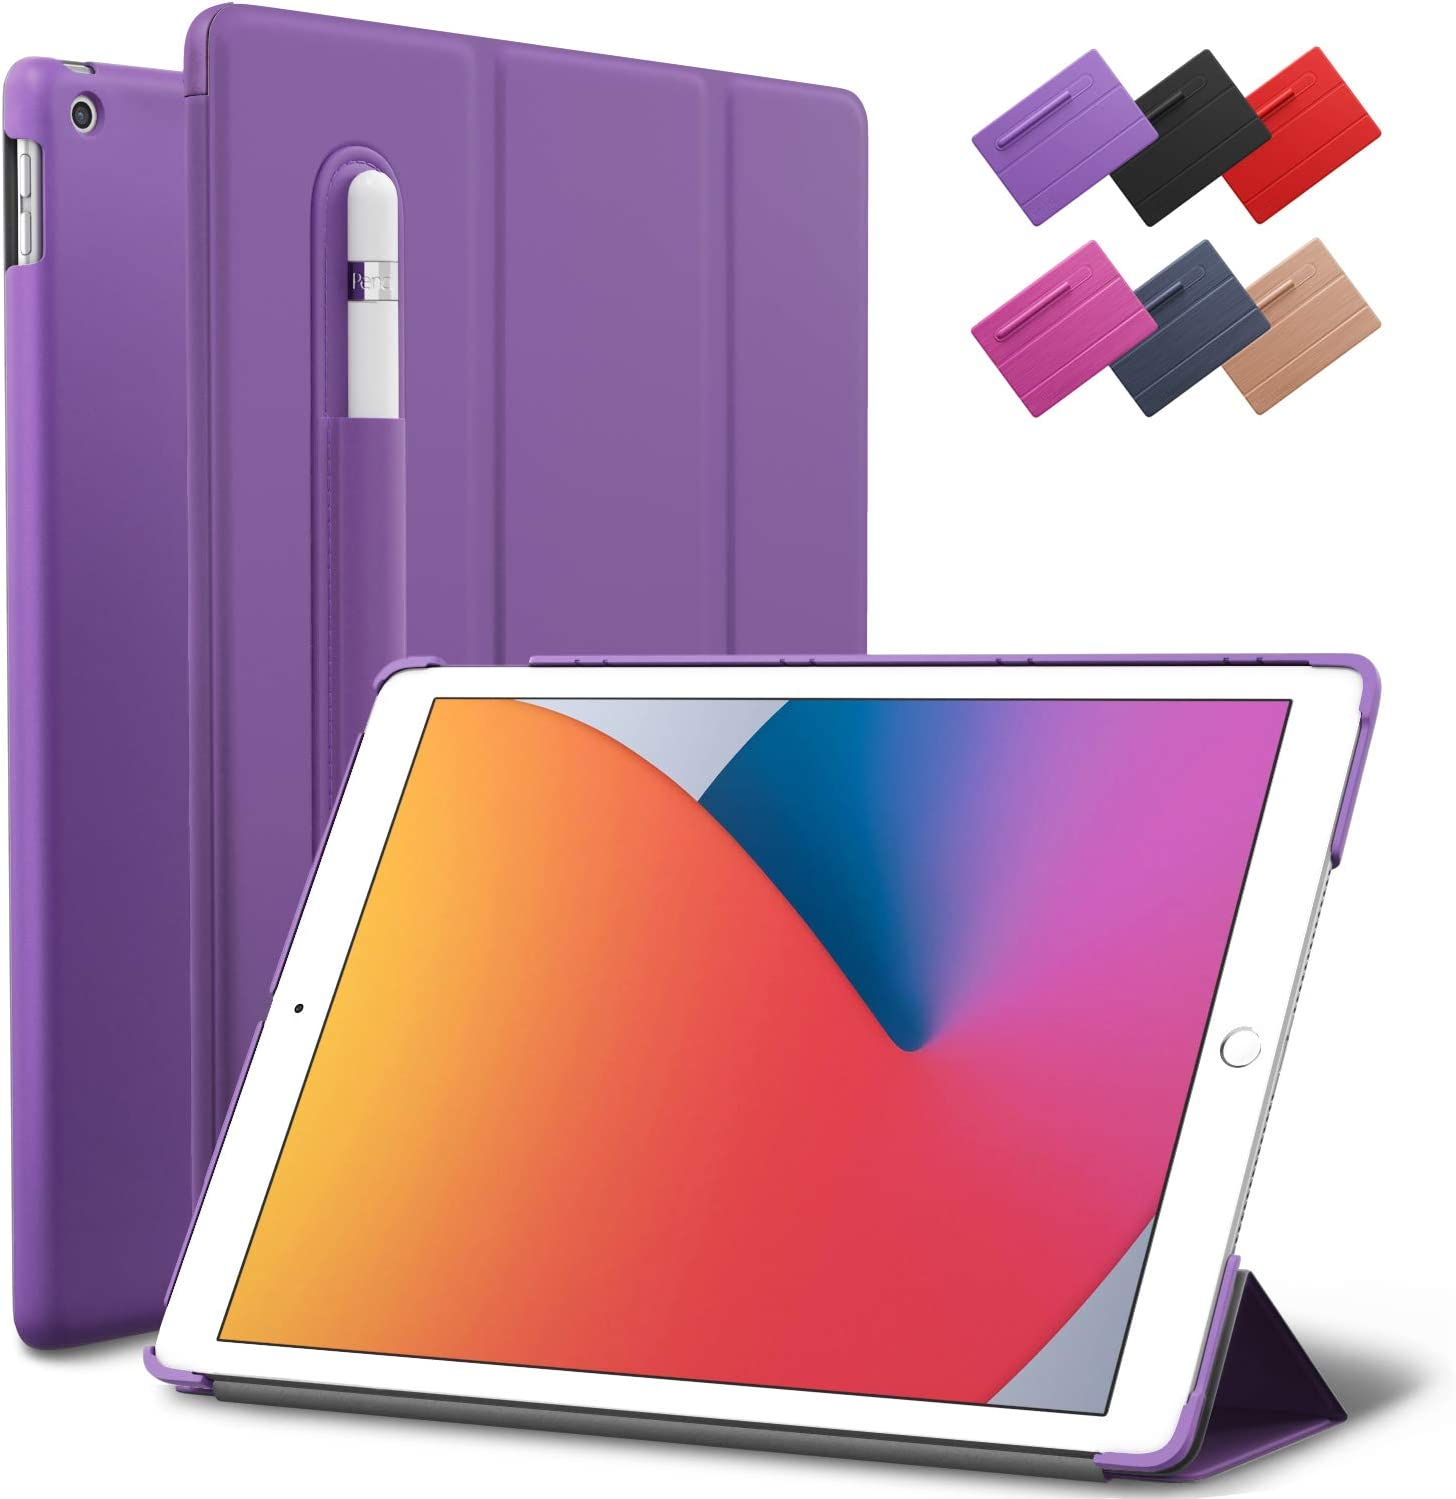 iPad 10.2-inch 2019 2020 Case, ROARTZ Purple Slim Smart Rubber Folio Hard Light Cover Wake Sleep Pencil Holder for 7th 8th Generation Latest Model A2197 A2198 A2200 A2270 A2428 A2429 A2430